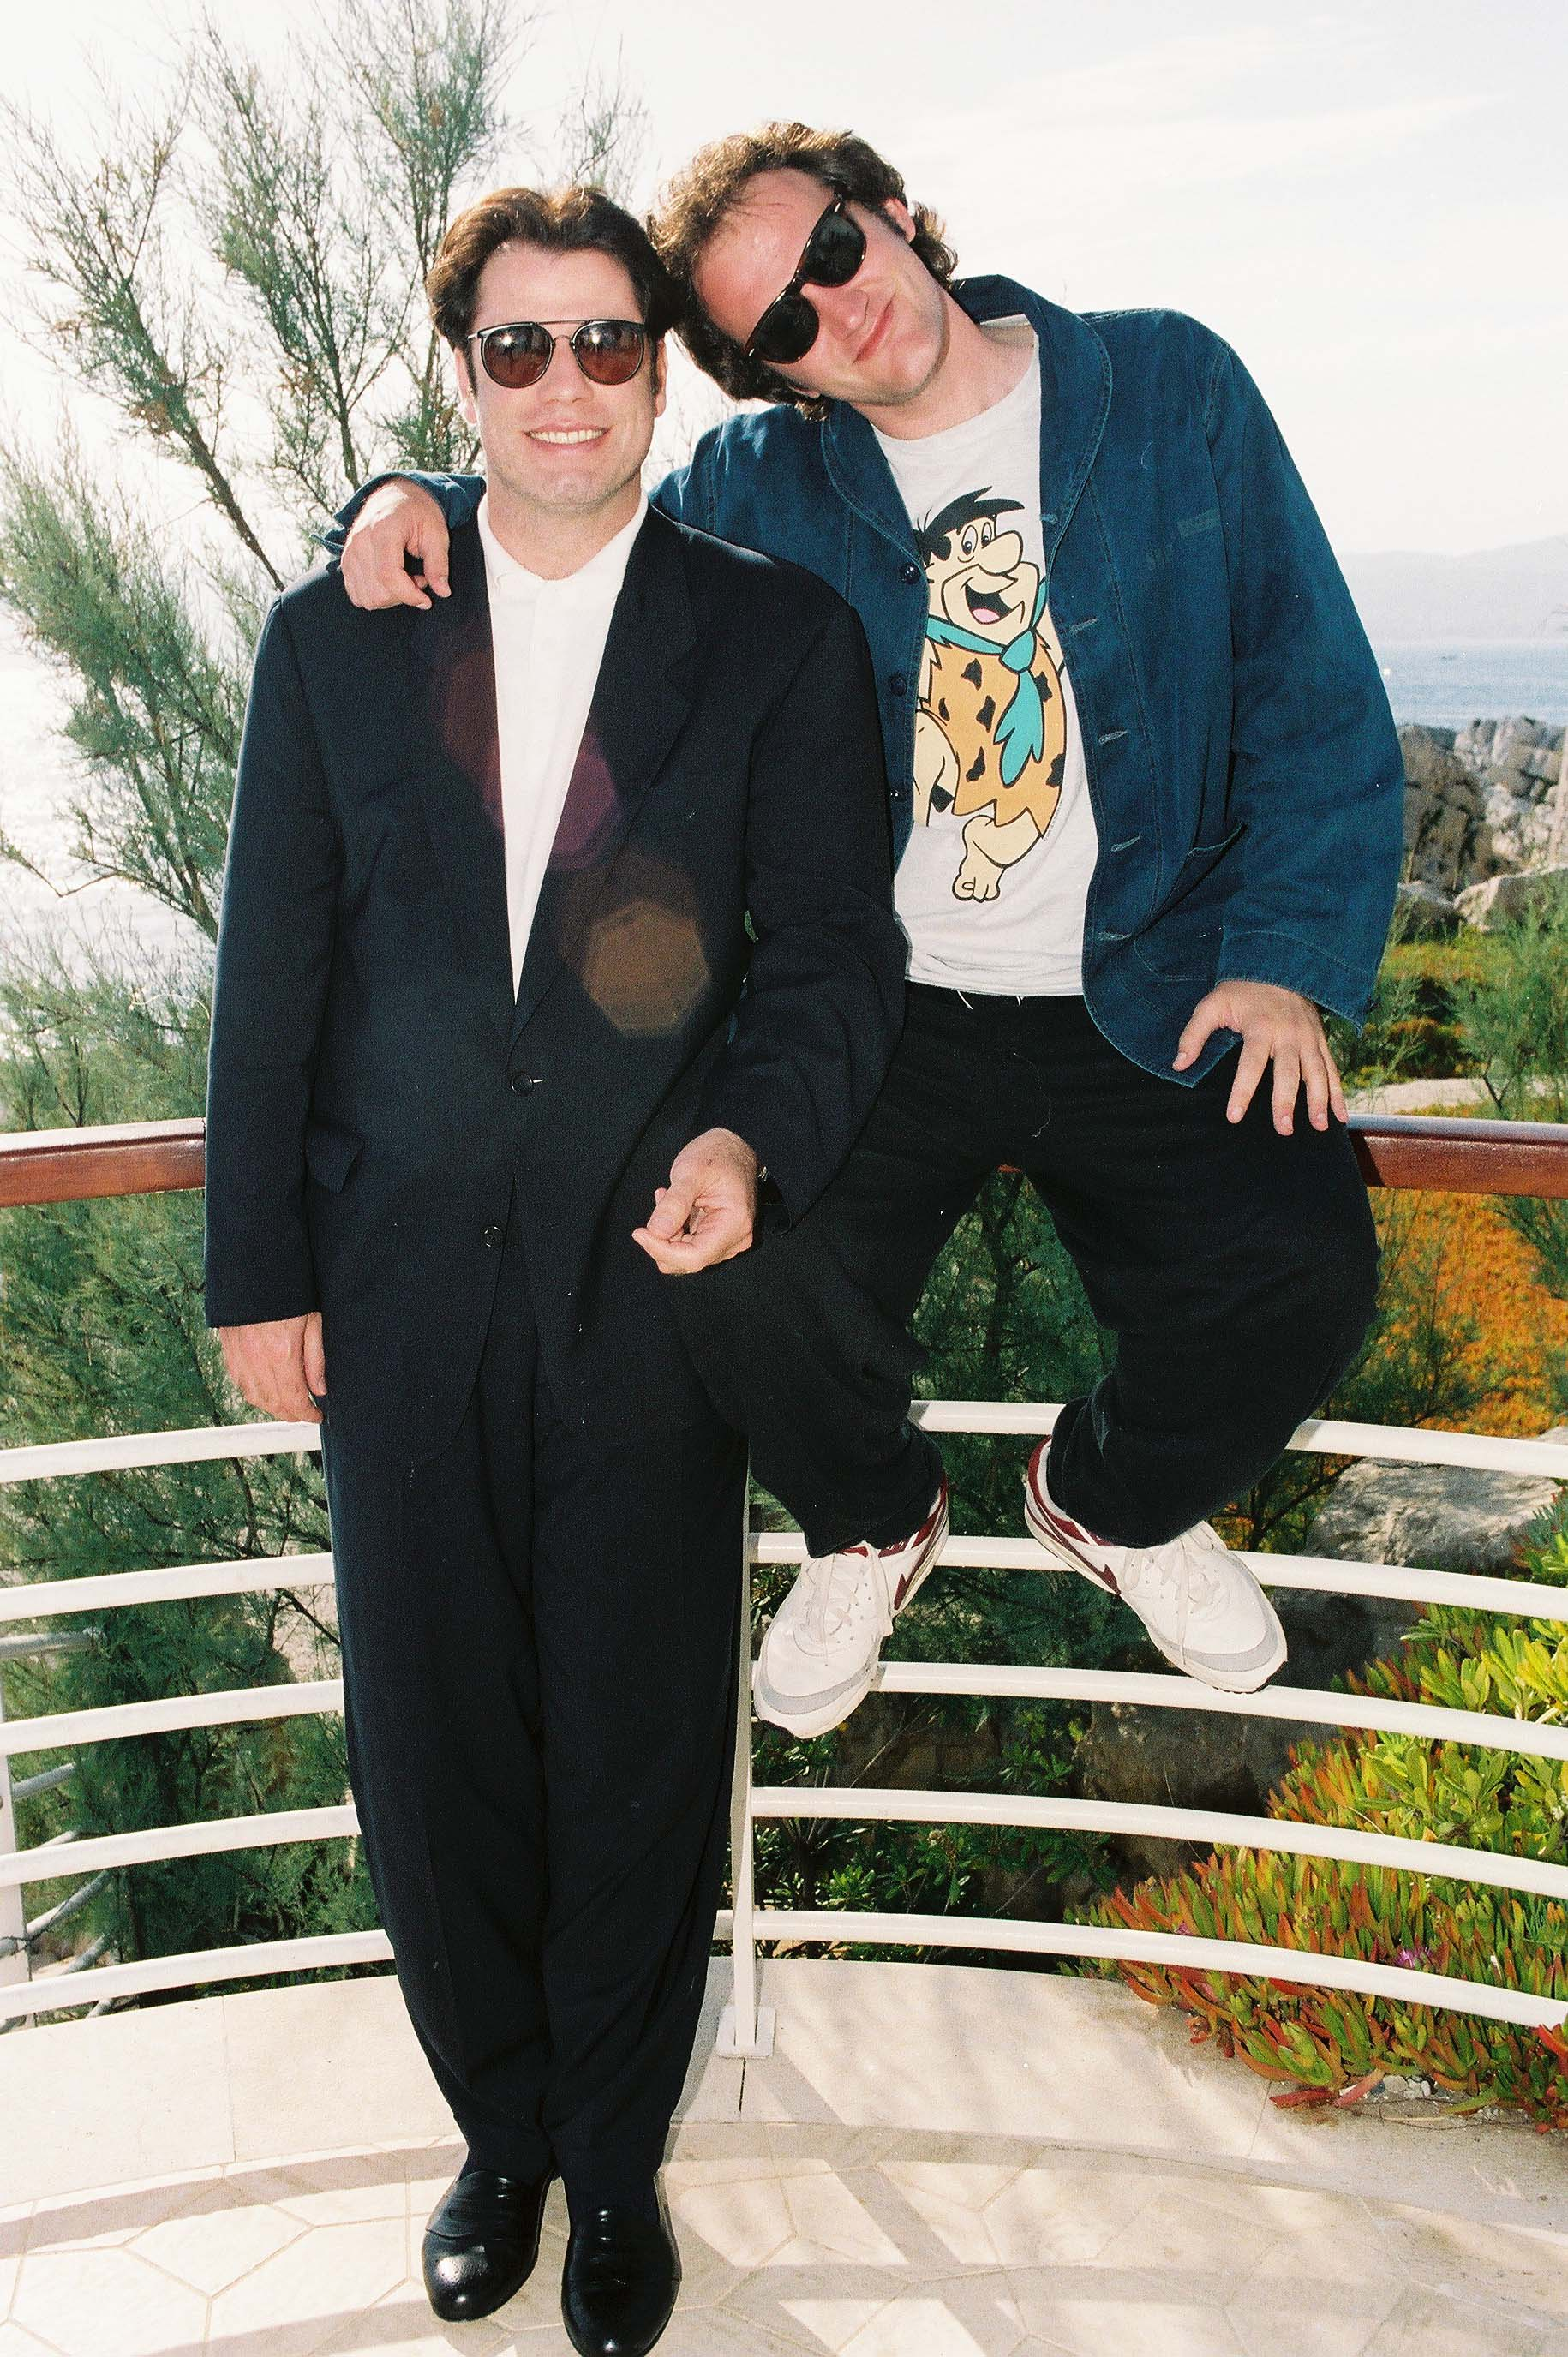 The Cannes Film Festival 1994 Pulp Fiction John Travolta & Quentin TarantinoThe Cannes Film Festival